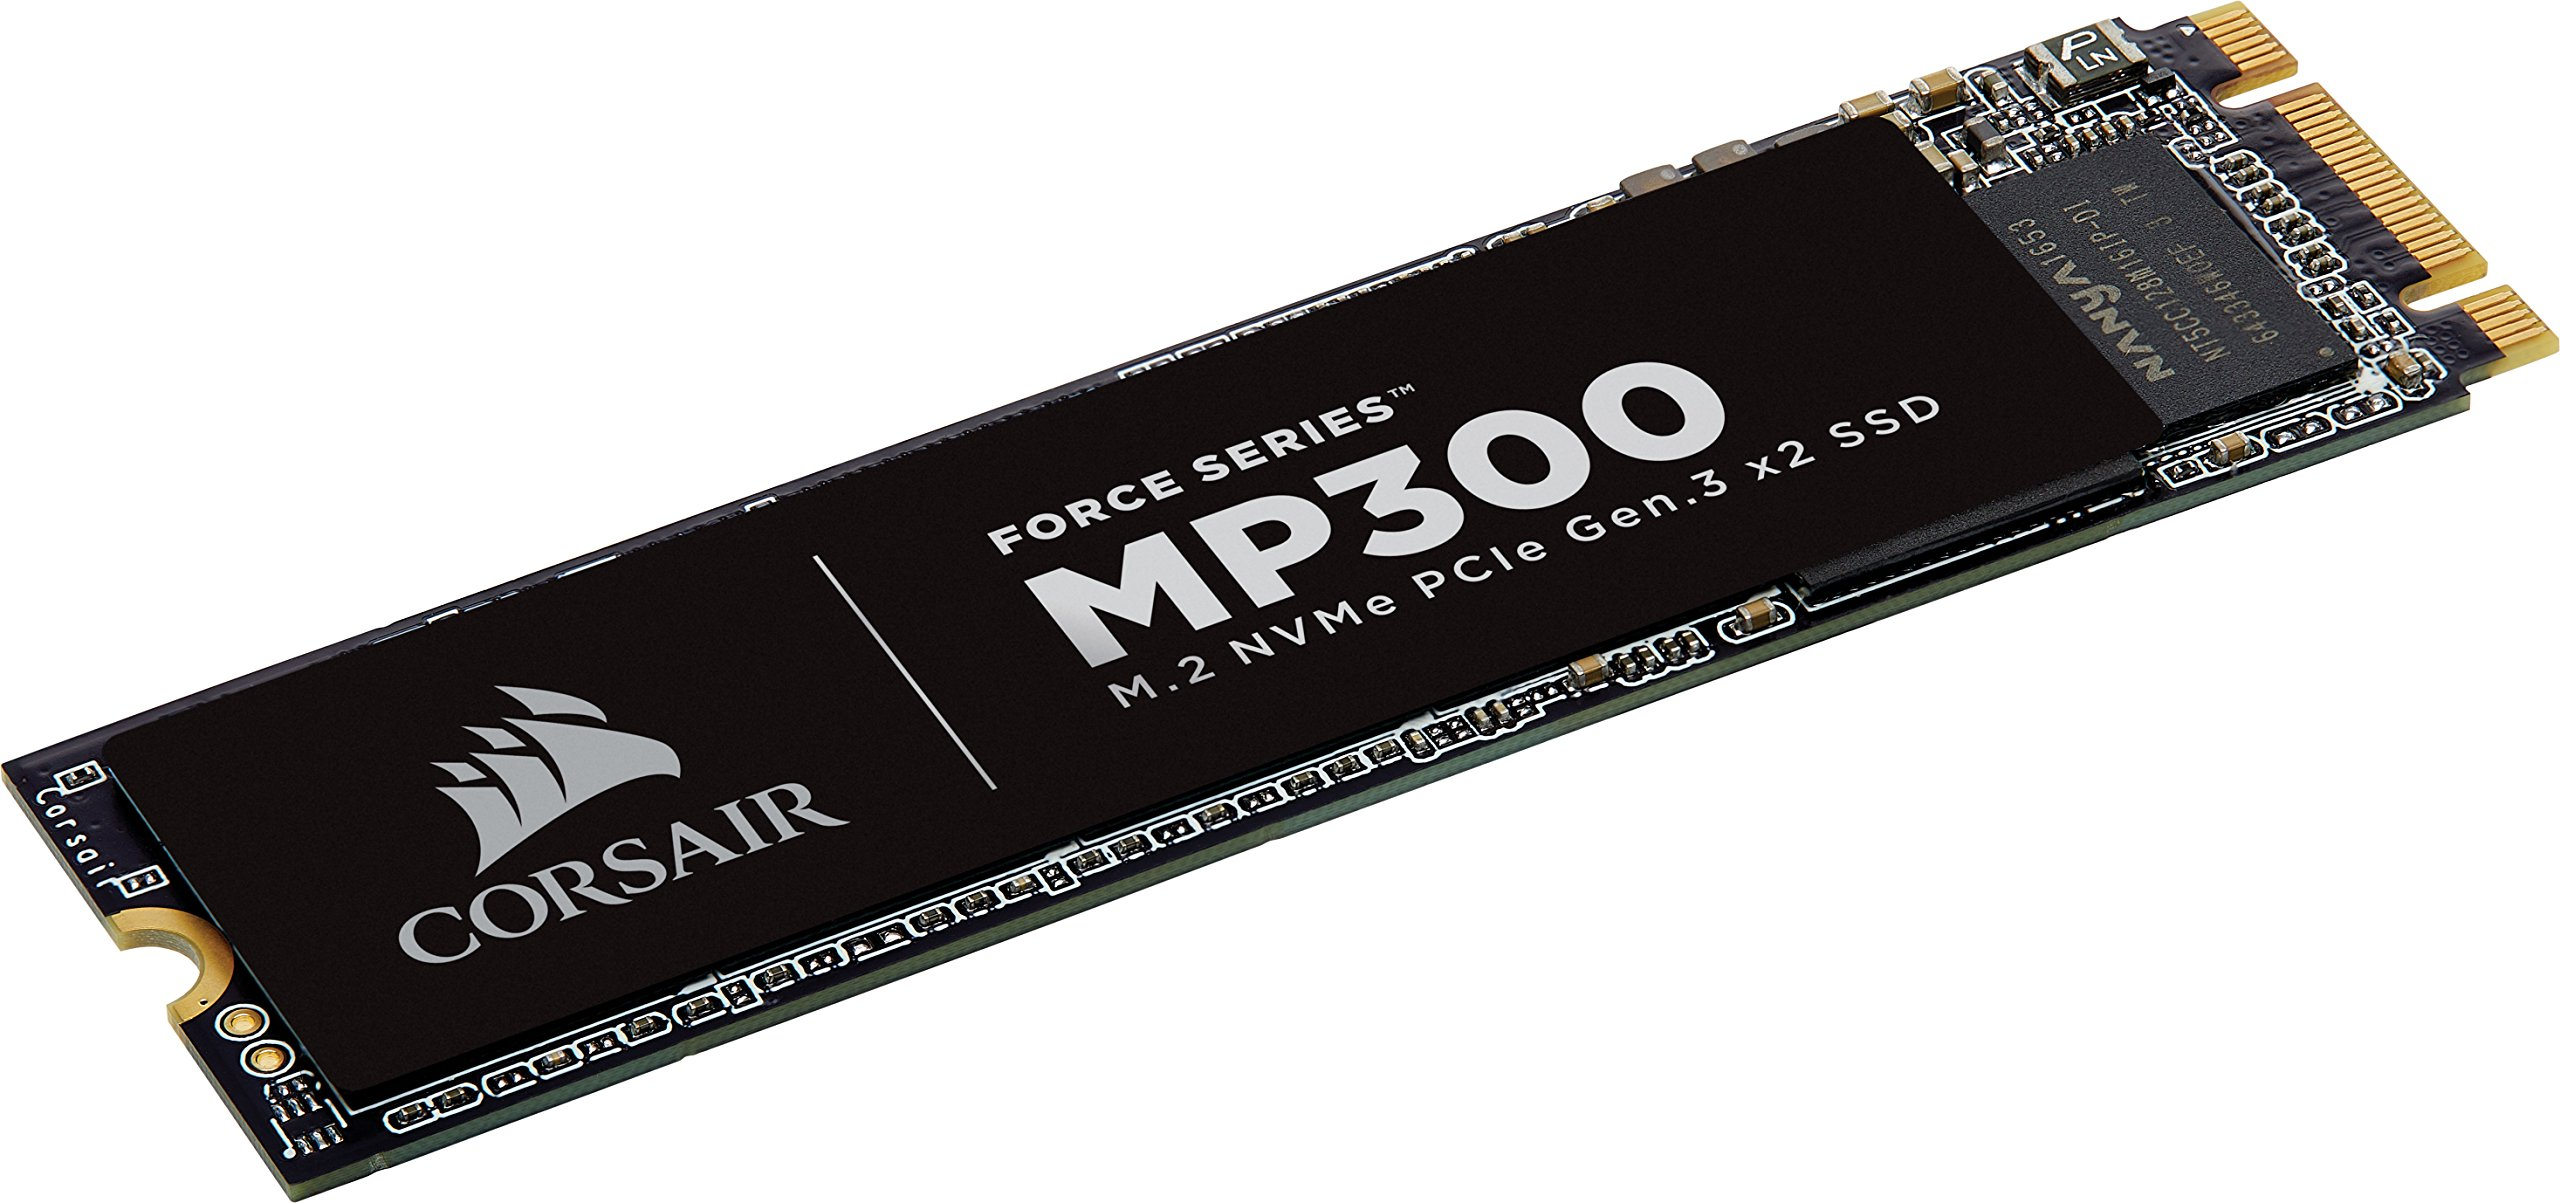 Computer_Drive_OR_Storage 3 High-speed NVMe PCI Express Gen 3 x2 Interface for speeds up to 1600MB/sec, 3x faster 6Gbps Utilizing state-of-the art, high-density 3D TLC NAND for the ideal mix of performance, endurance and value Compact M.2 2280 industry standard form factor fits directly into your notebook or motherboard